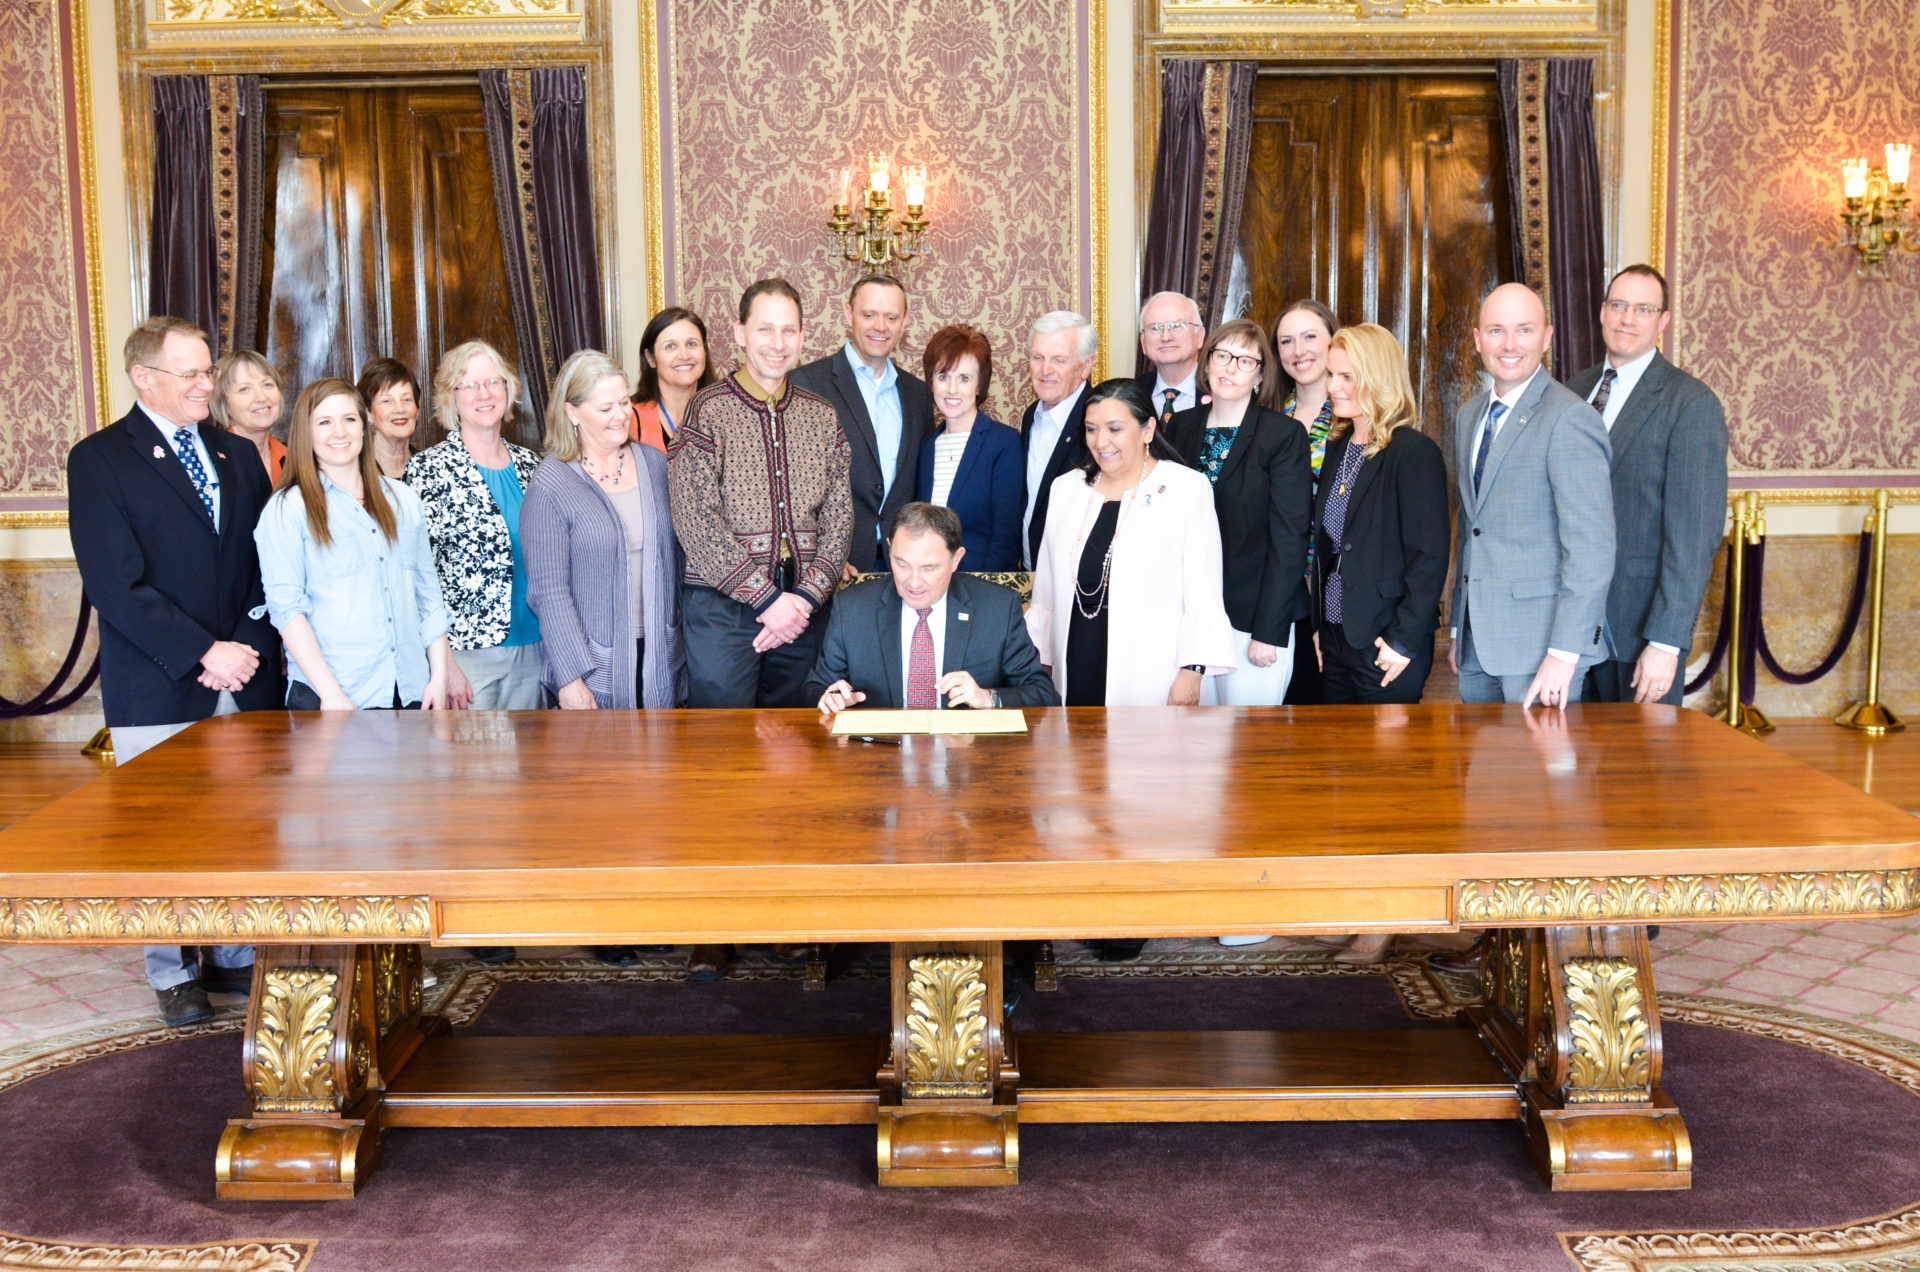 Governor Herbert signing SCR 11 Concurrent Resolution on Awareness and Treatment of Maternal Depression and Anxiety